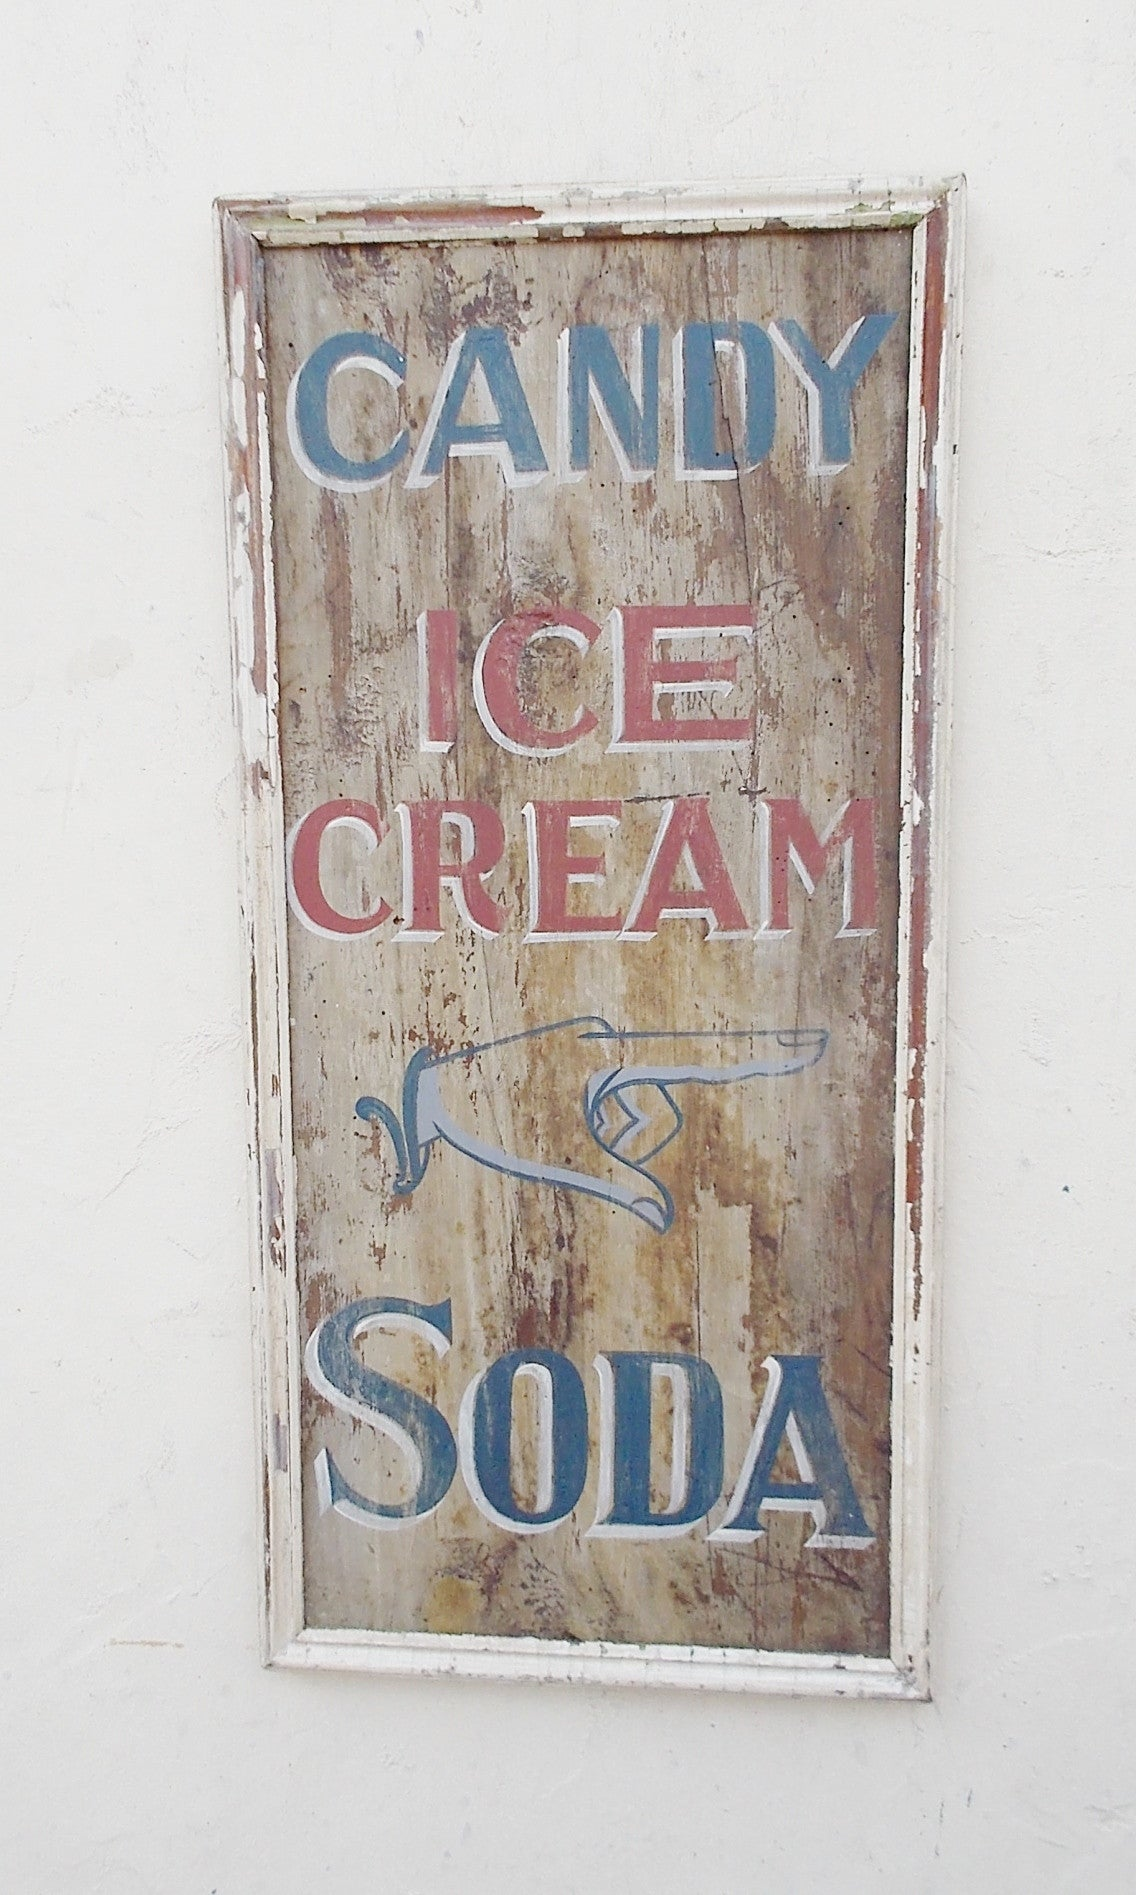 Candy, Ice Cream, Soda